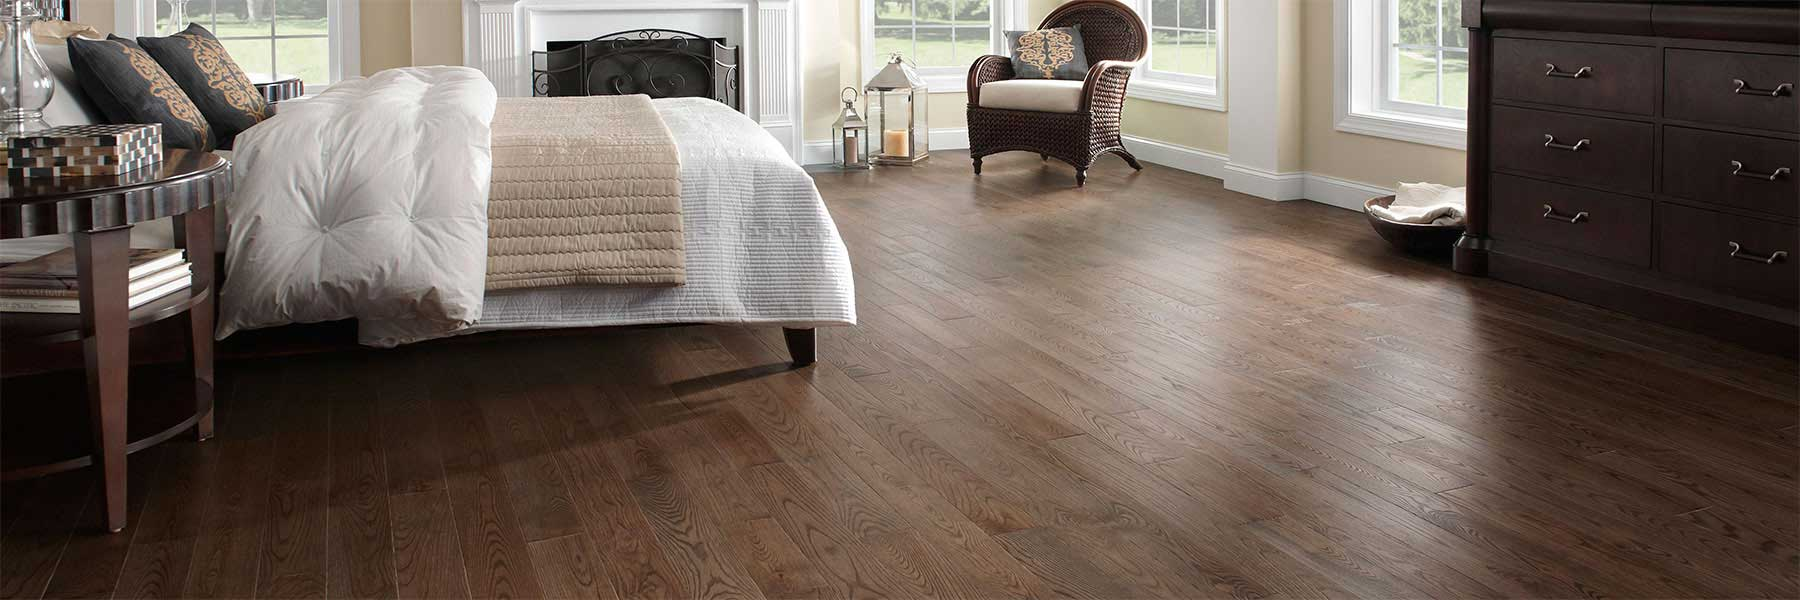 floor at lowes waterproof alibaba showroom wood com manufacturers and plank flooring suppliers vinyl